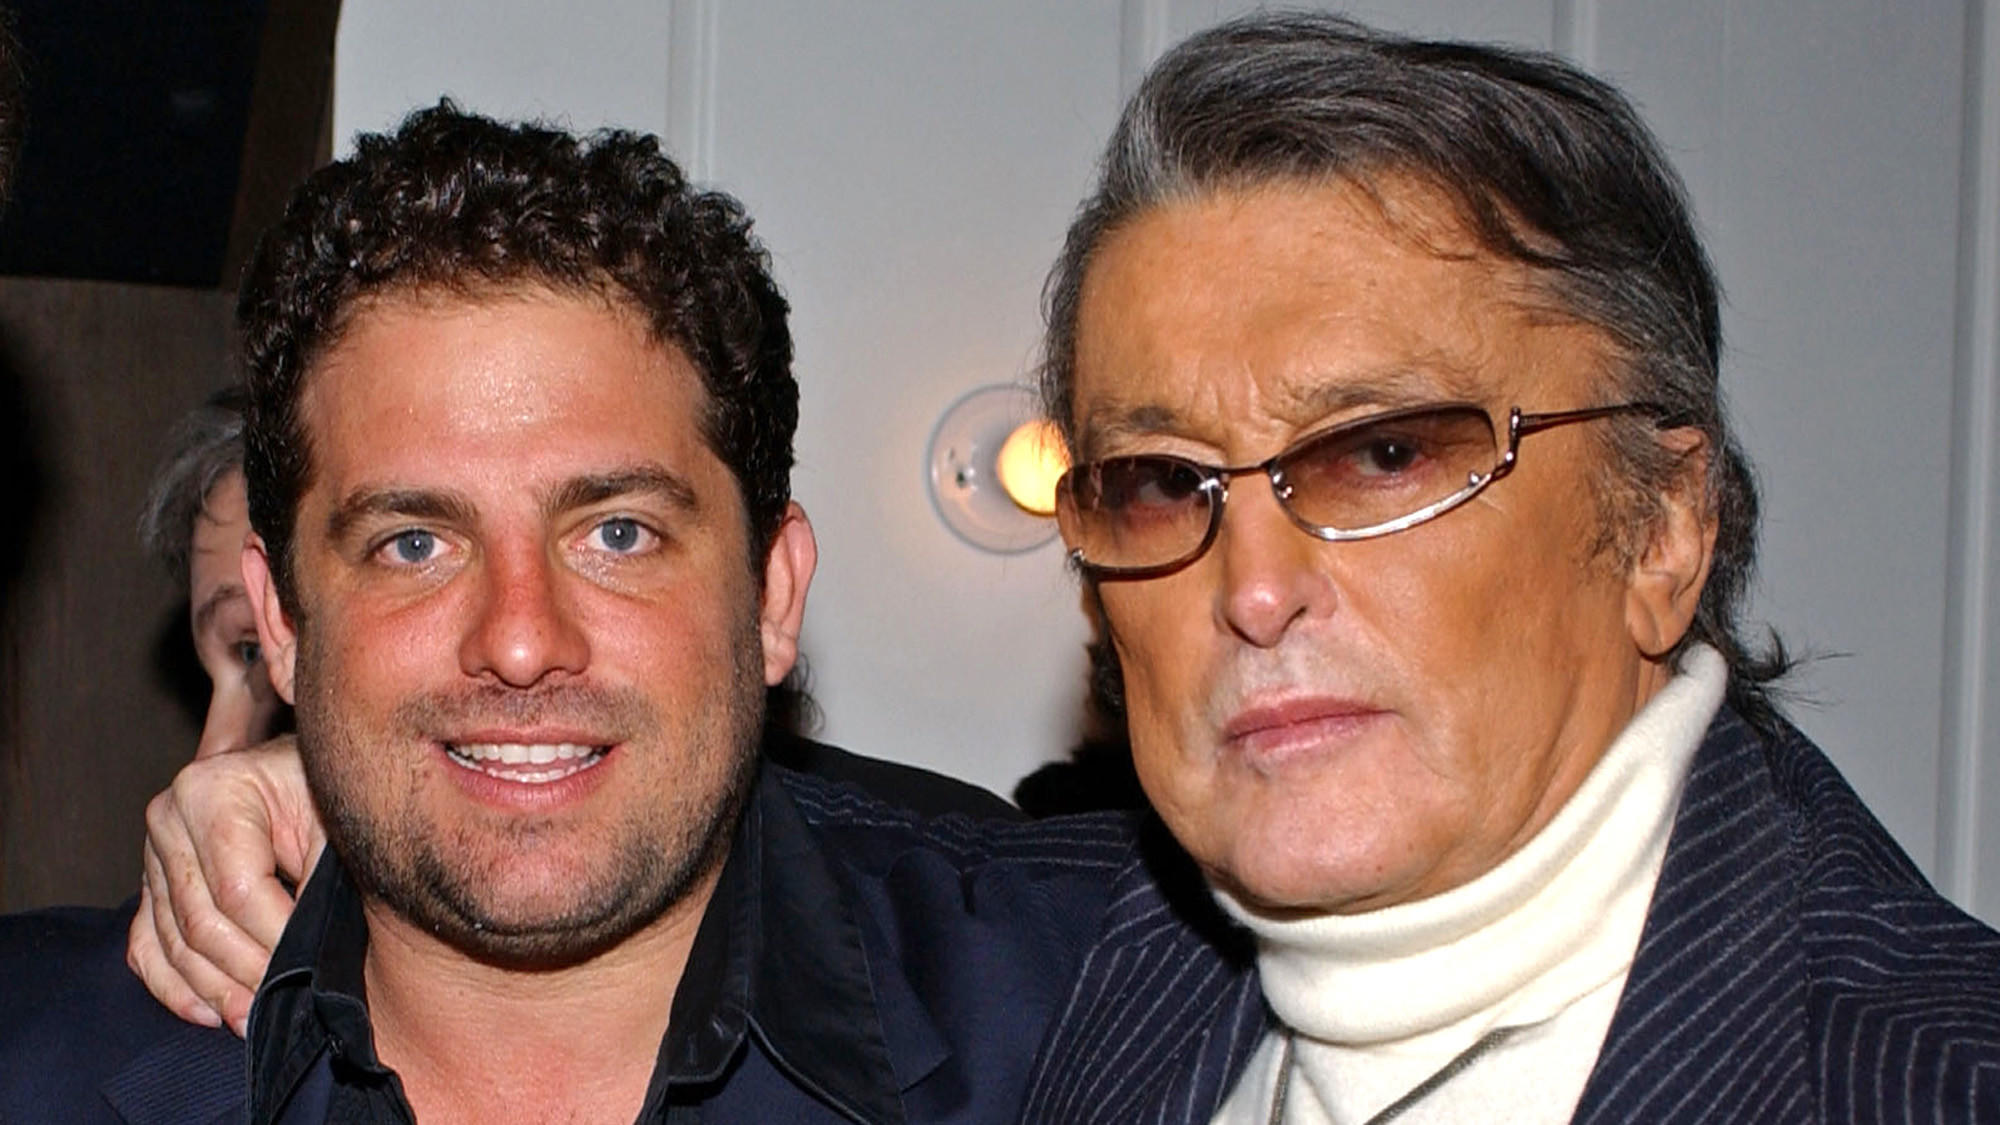 Director Brett Ratner and producer Robert Evans stand for a photo at a Beverly Hills Oscars party in 2005.